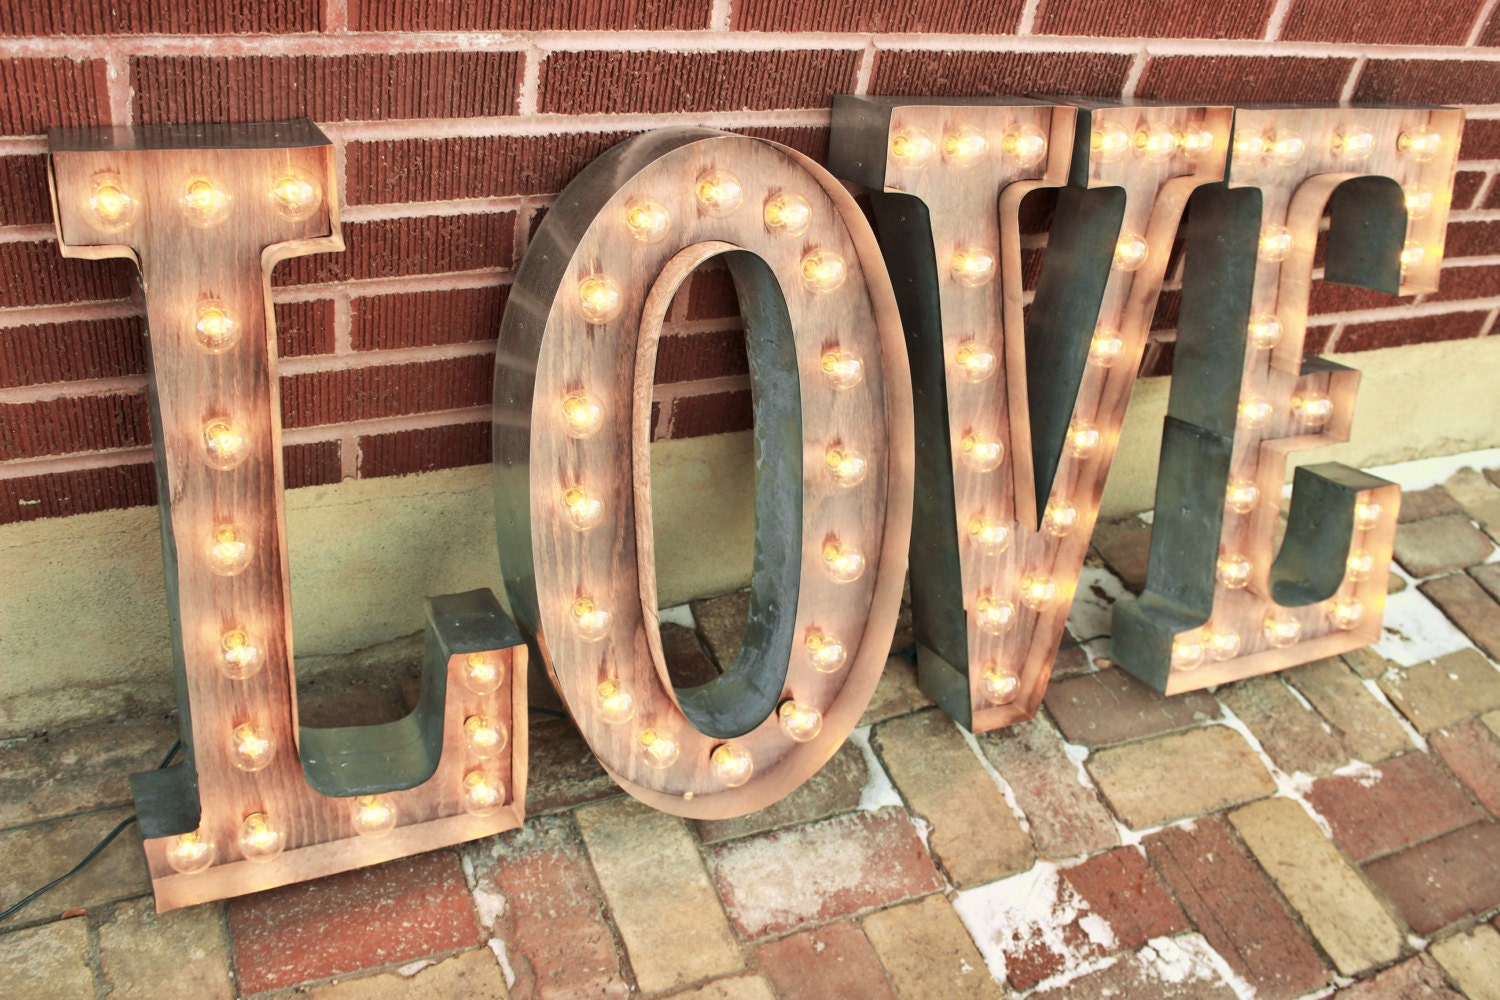 Metal Letter Signs With Lights 36 & Larger Letter Lights 4 Marquee Signs Light Up